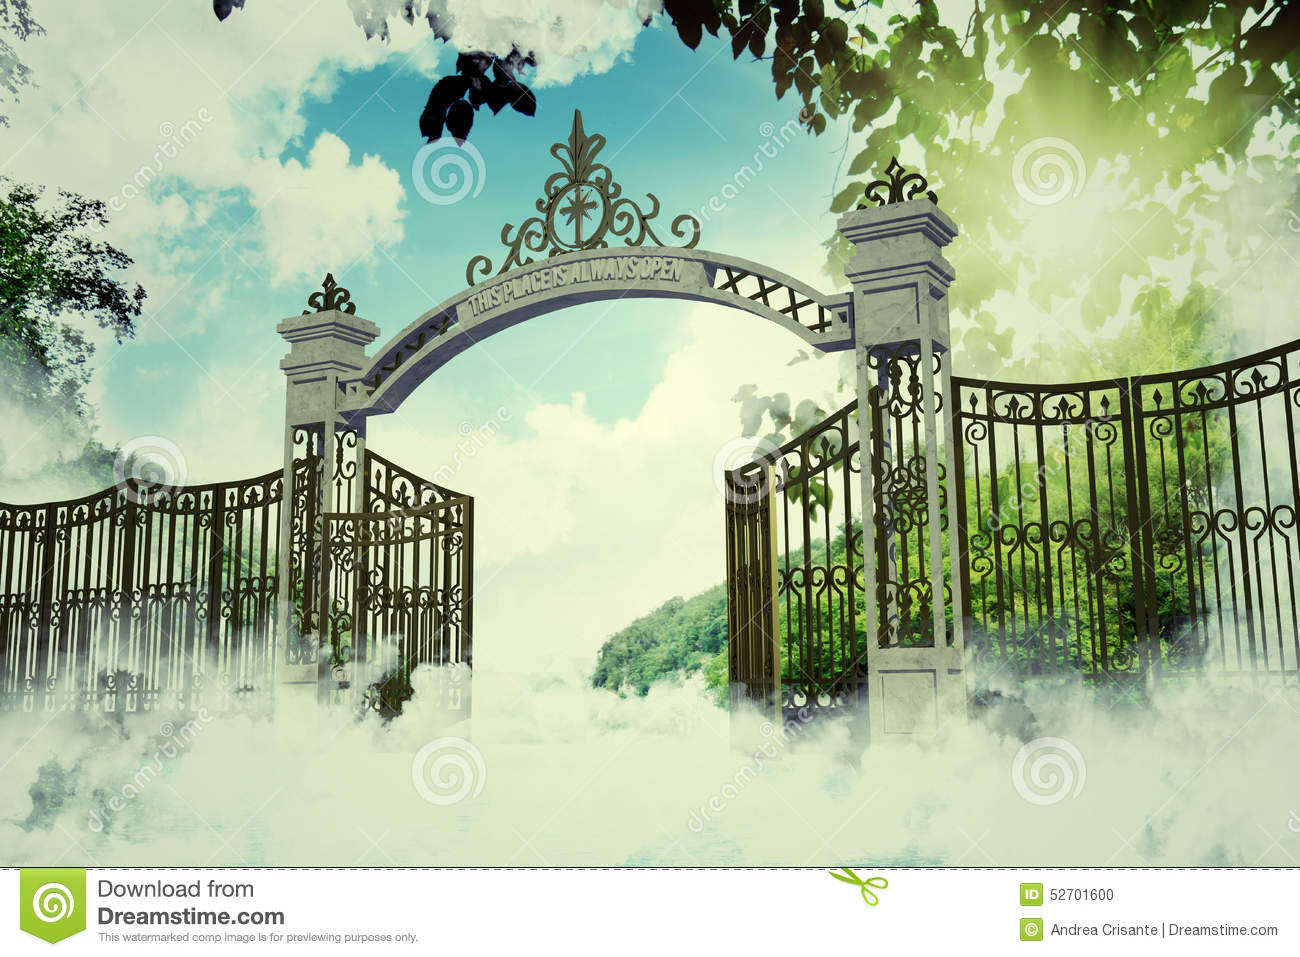 28 Collection of Gates Of Heaven Clipart  High quality